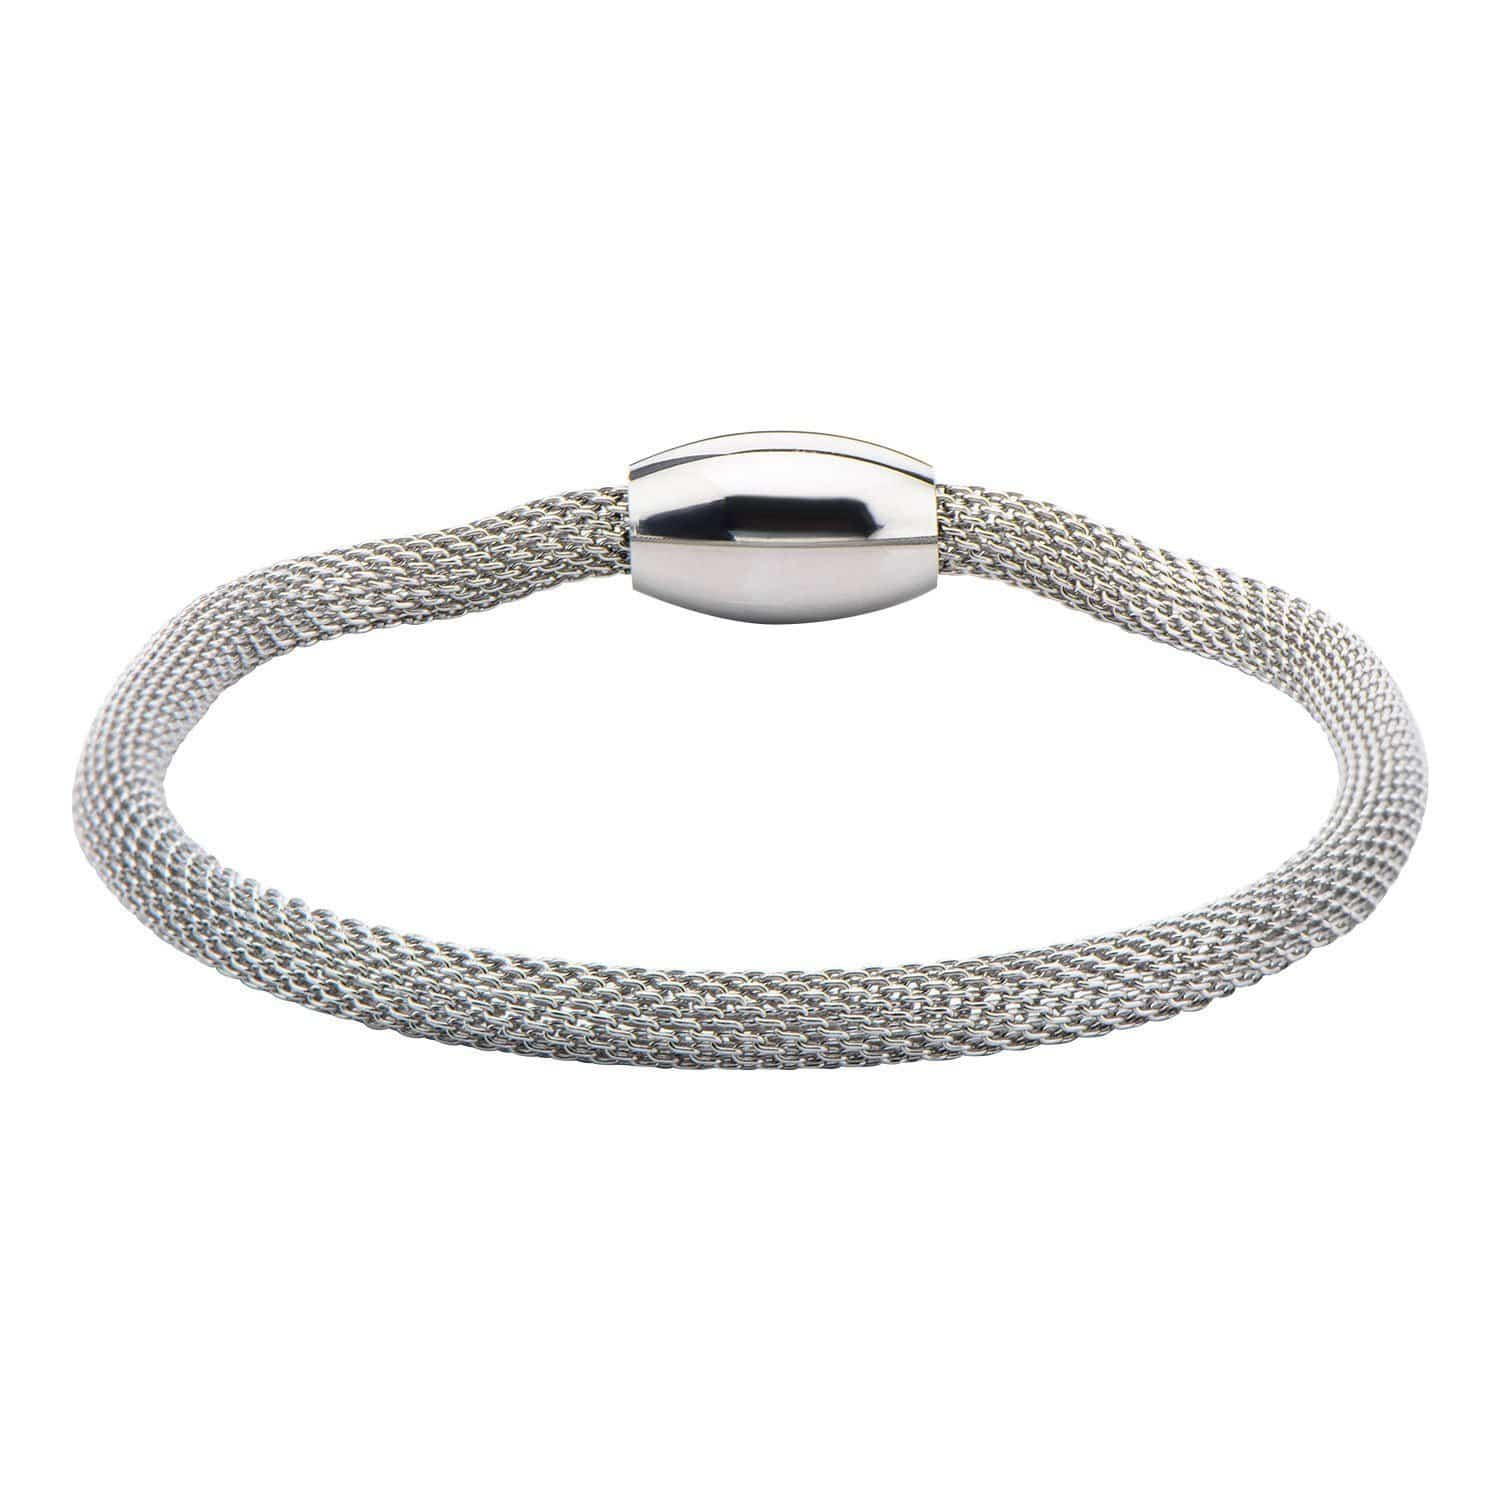 Silver Stainless Steel Polished Mesh Bracelet with Magnetic Closure Bracelets